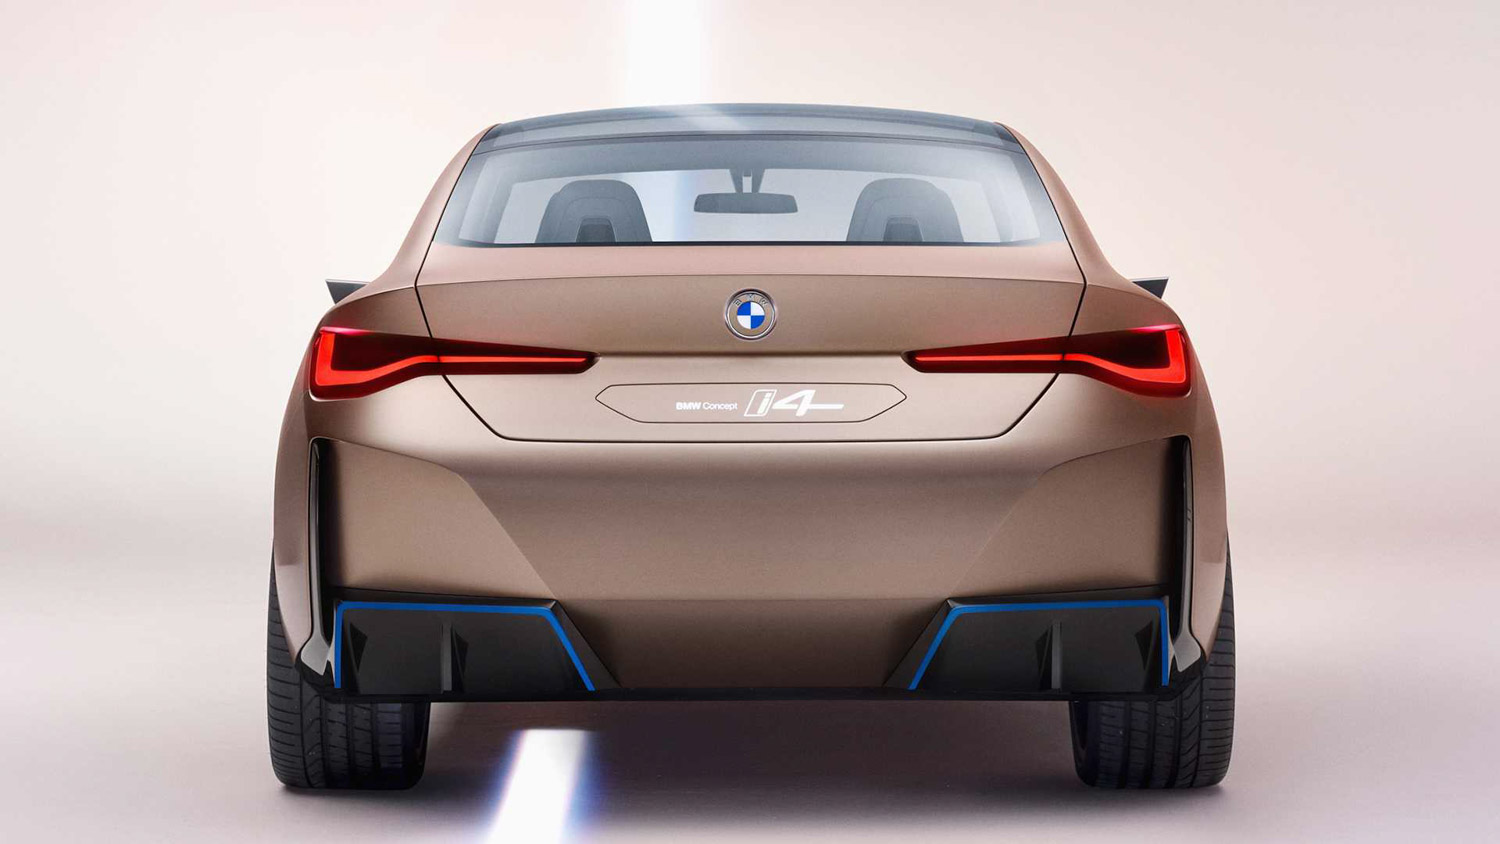 BMW i4 Electric Car Concept Revealed, Looking Mesmerising